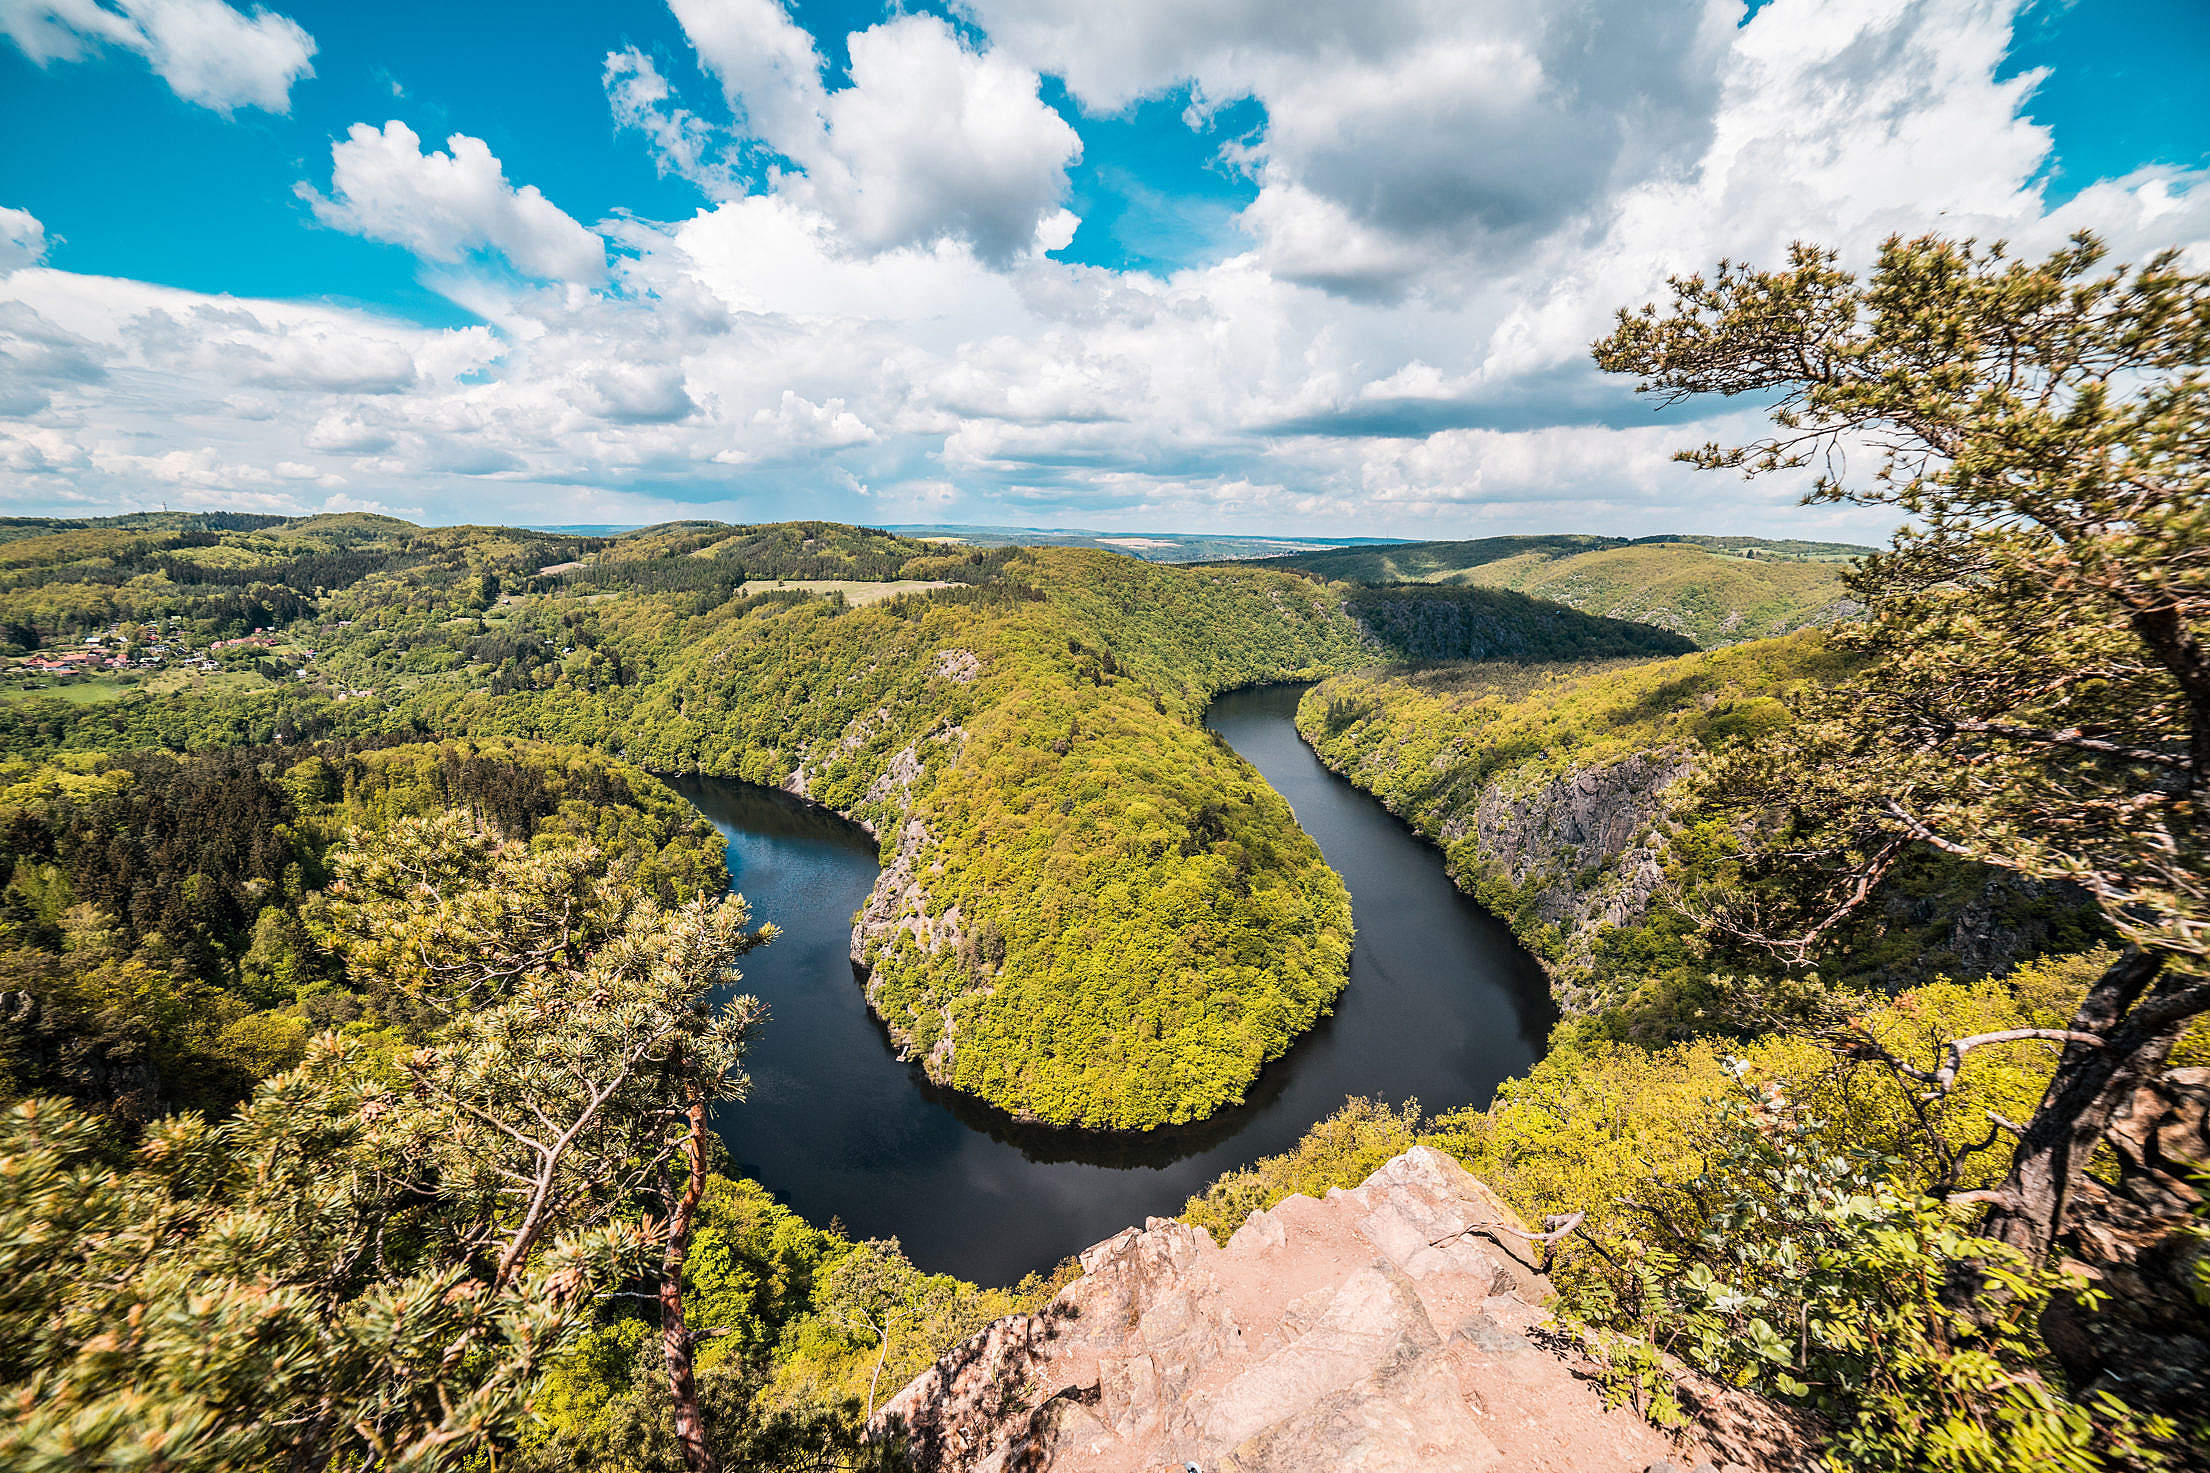 Vyhlidka Maj Czech Natural Look-Out Viewpoint Free Stock Photo